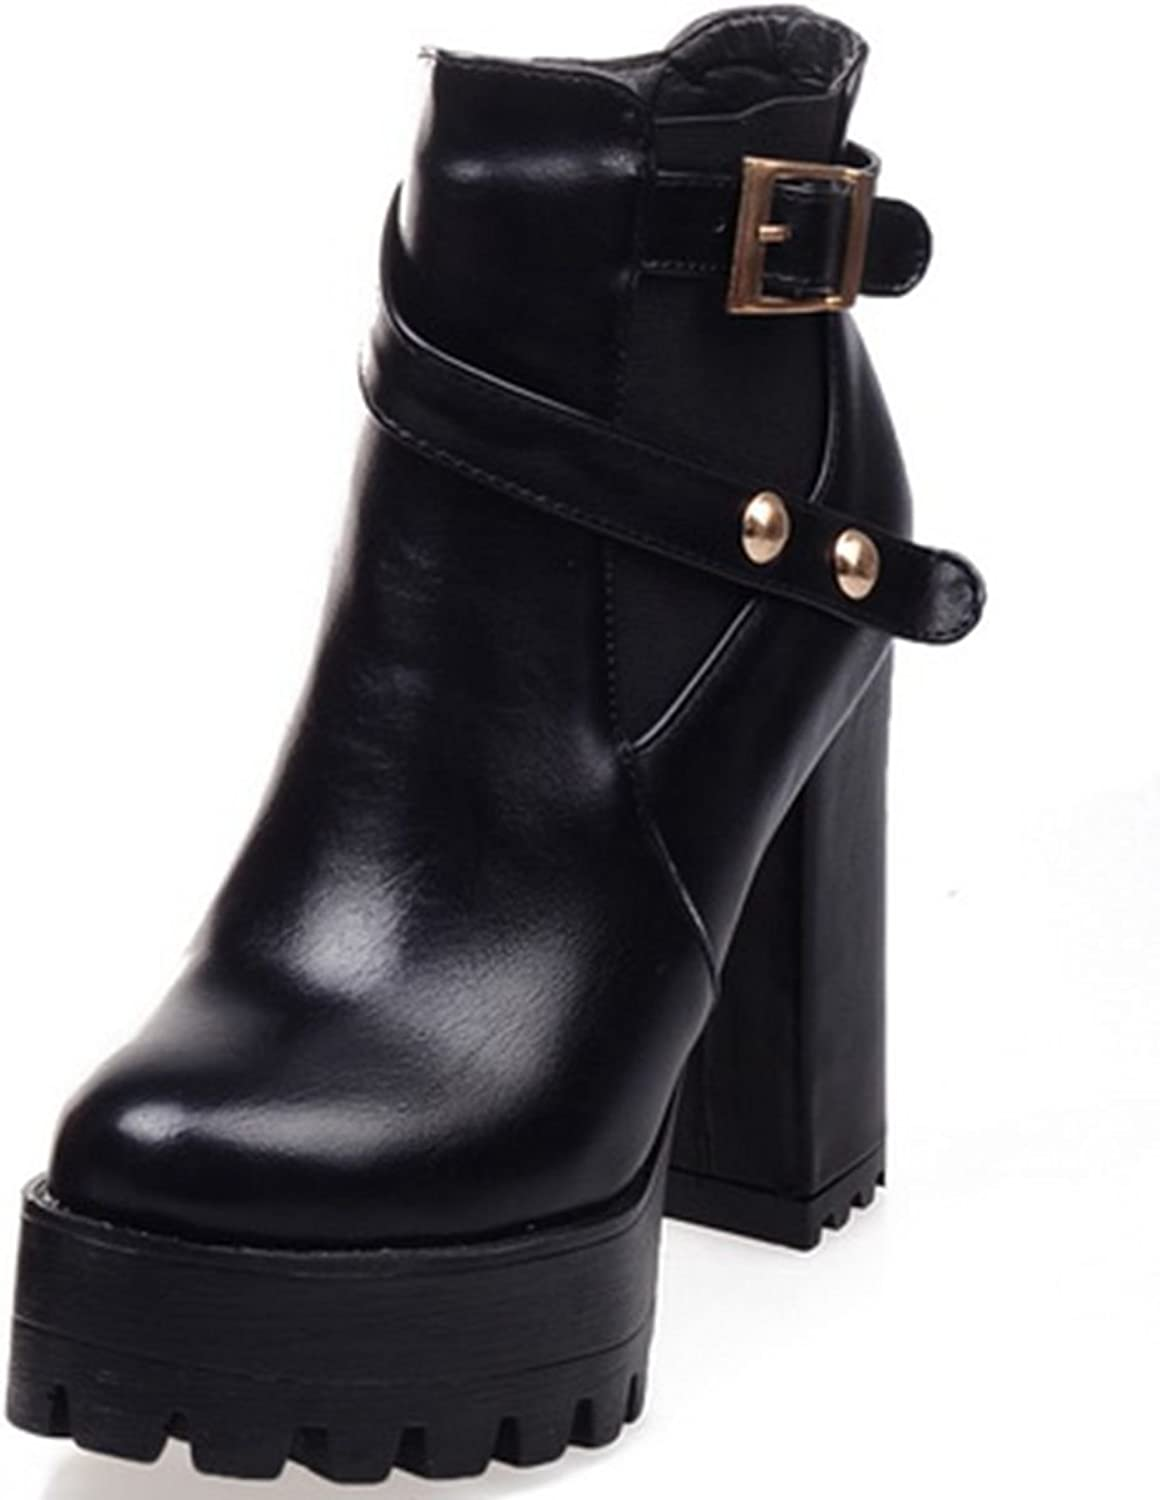 DoraTasia Mature Cow Leather Nubuck Buckle Strap Women's Ankle High Boots